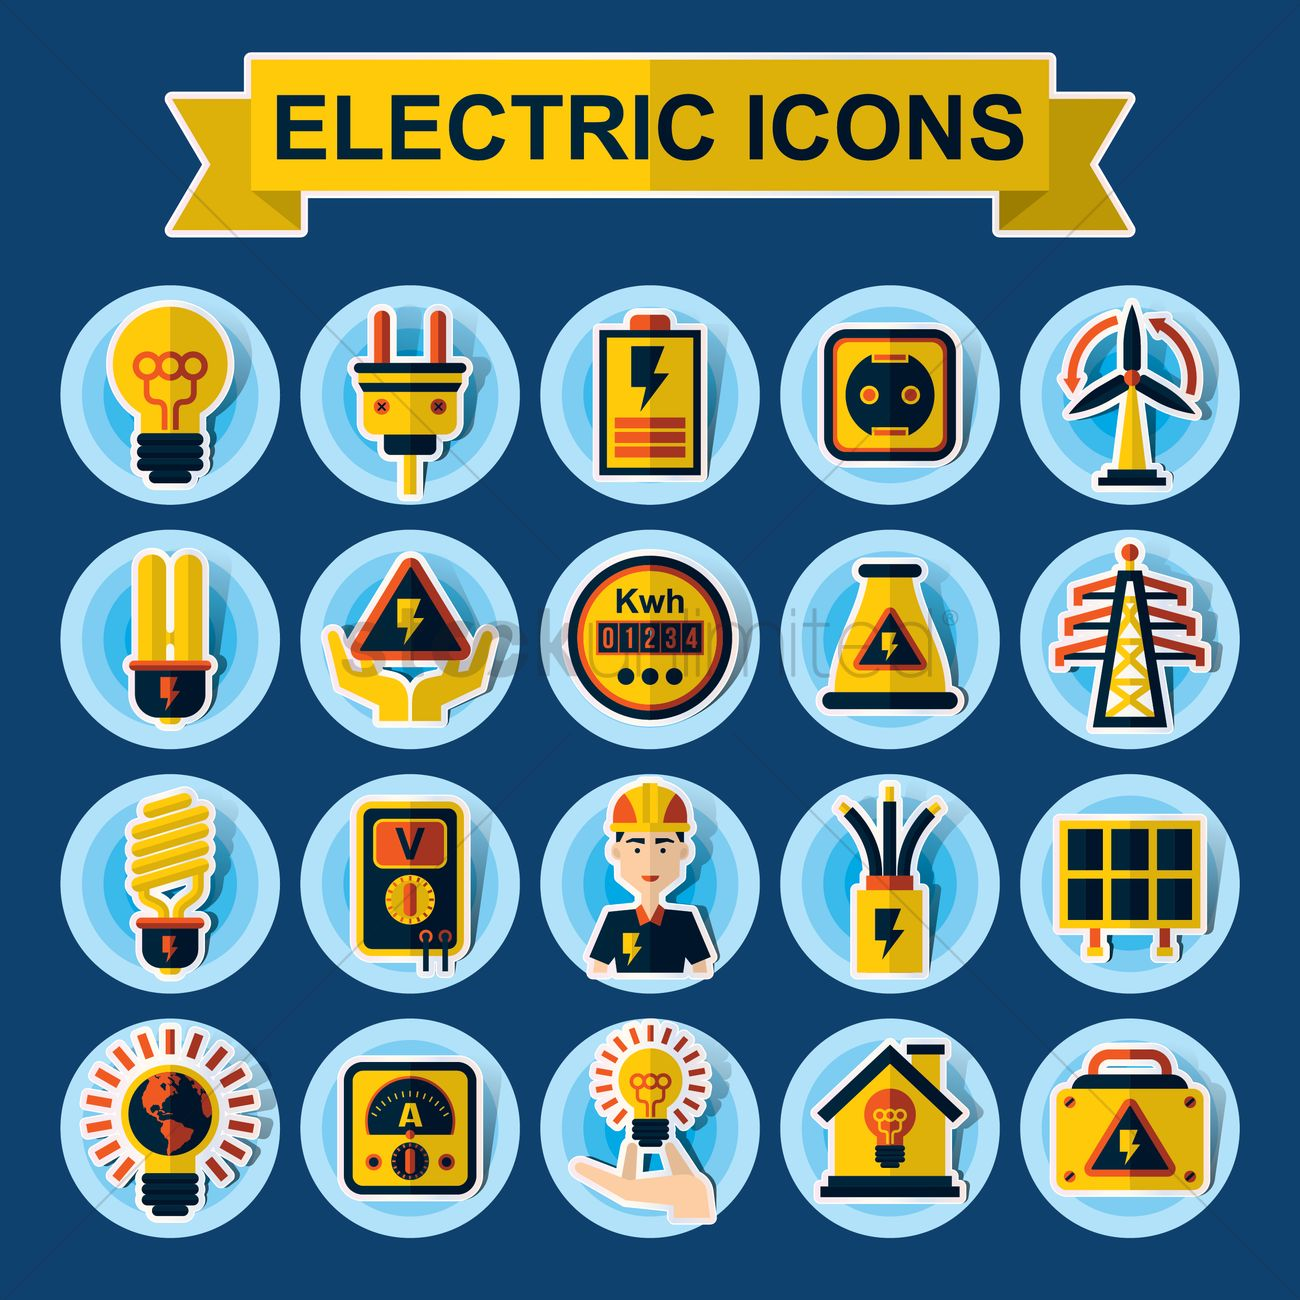 Collection Of Electrical Icons Vector Image 1407062 Stockunlimited